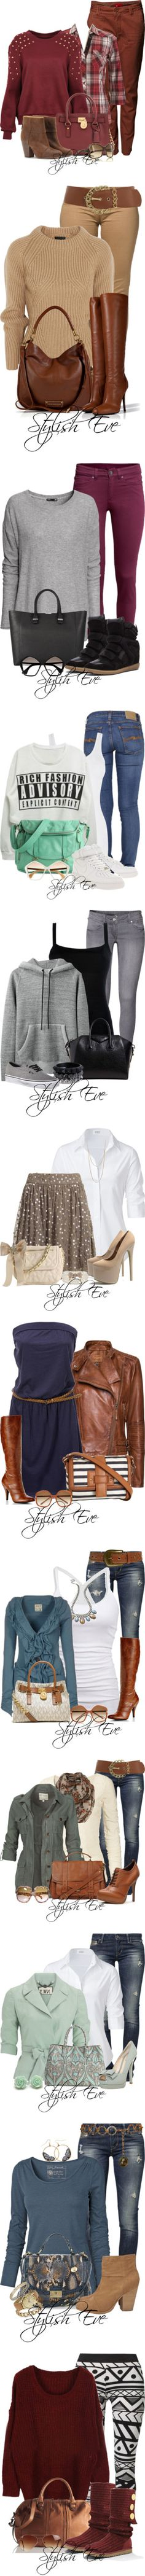 60 to 80-Likes Outfits By Stylish Eve by stylisheve on Polyvore featuring мода, Edc By Esprit, Michael Kors, rag & bone, Prada, Monkee Genes, Burberry, Marc by Marc Jacobs, Giuseppe Zanotti and Miss Selfridge